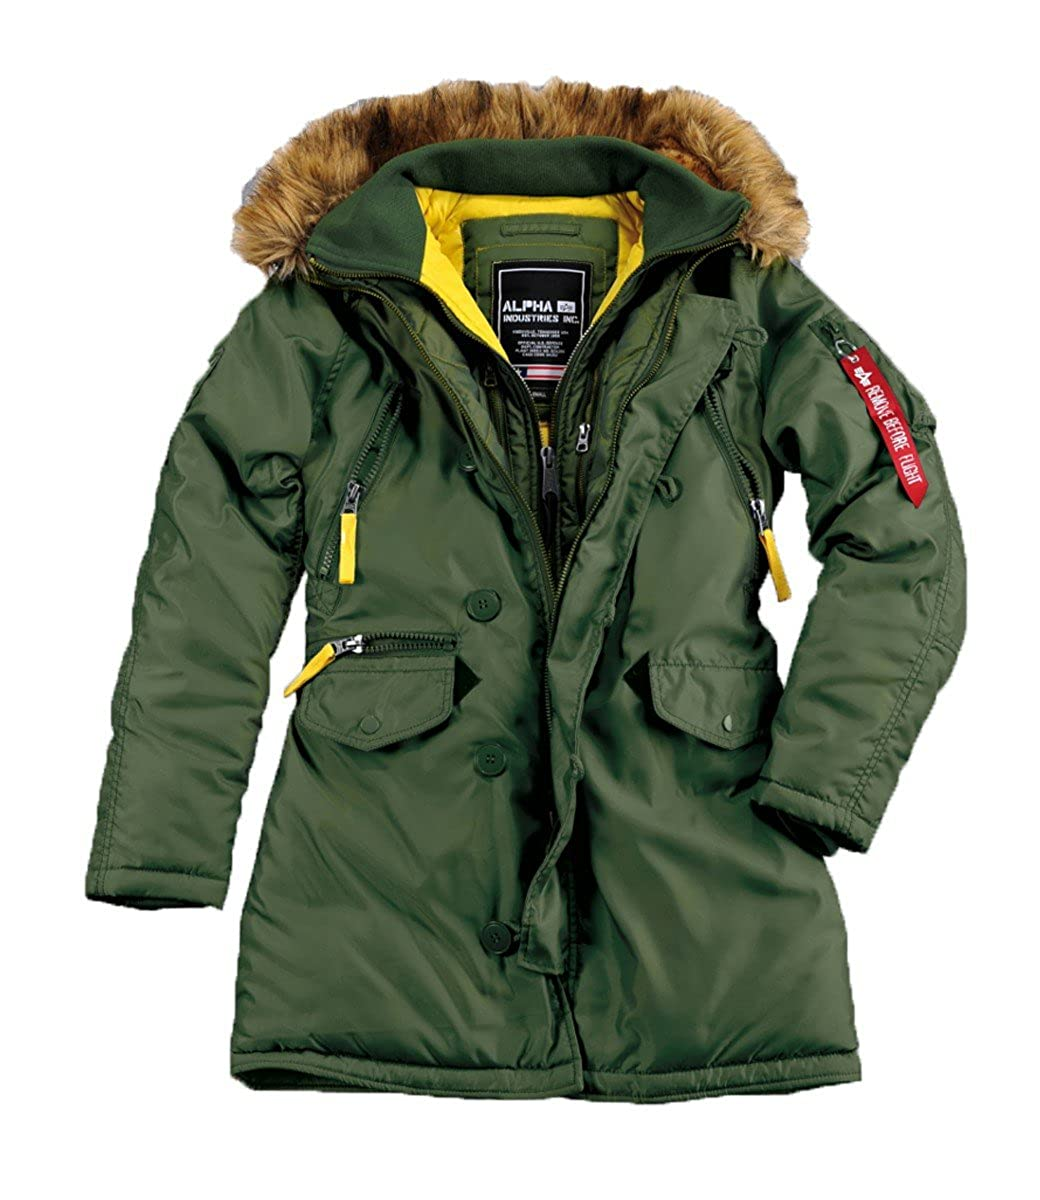 Alpha industries winterjacken damen